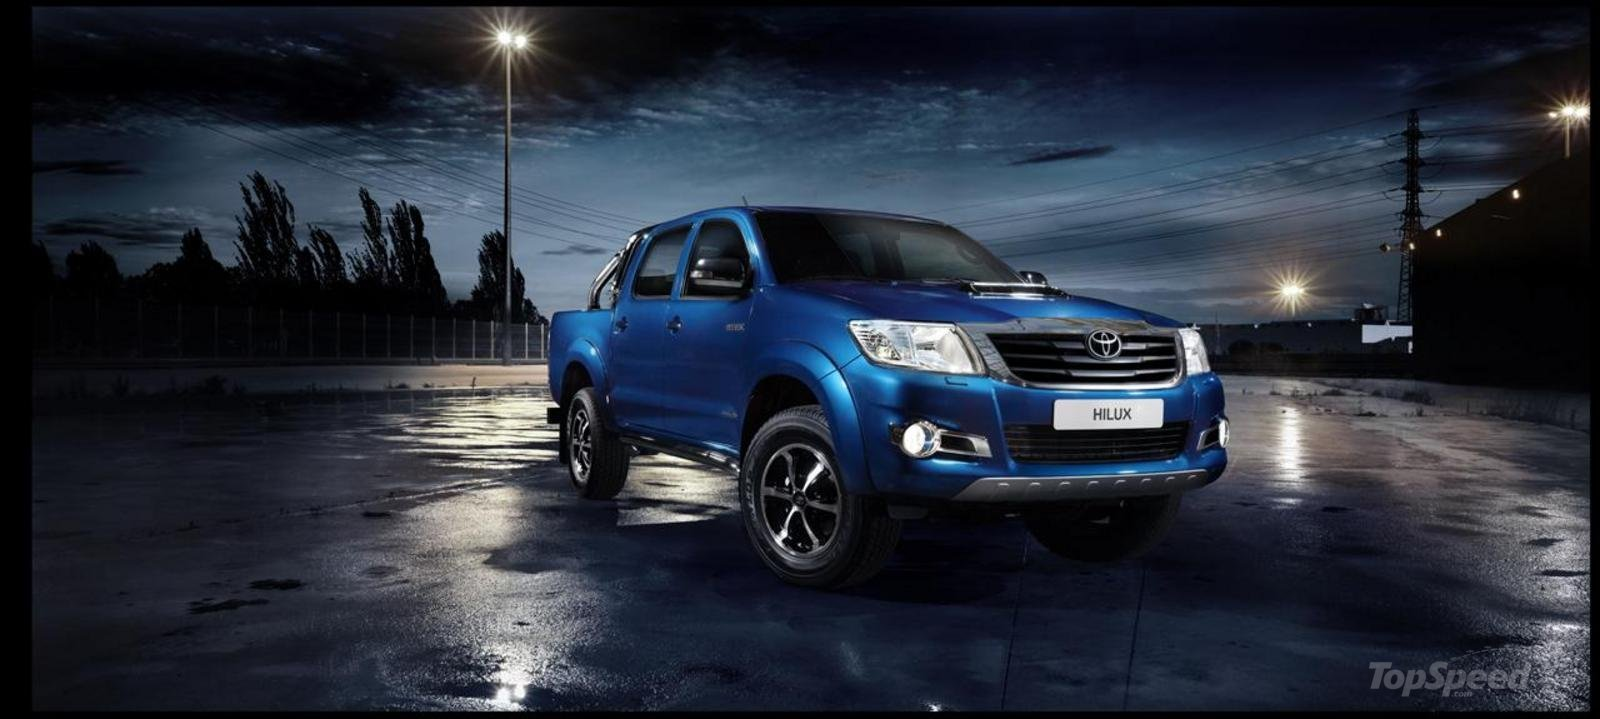 2013 Toyota Hilux Invincible Review - Top Speed